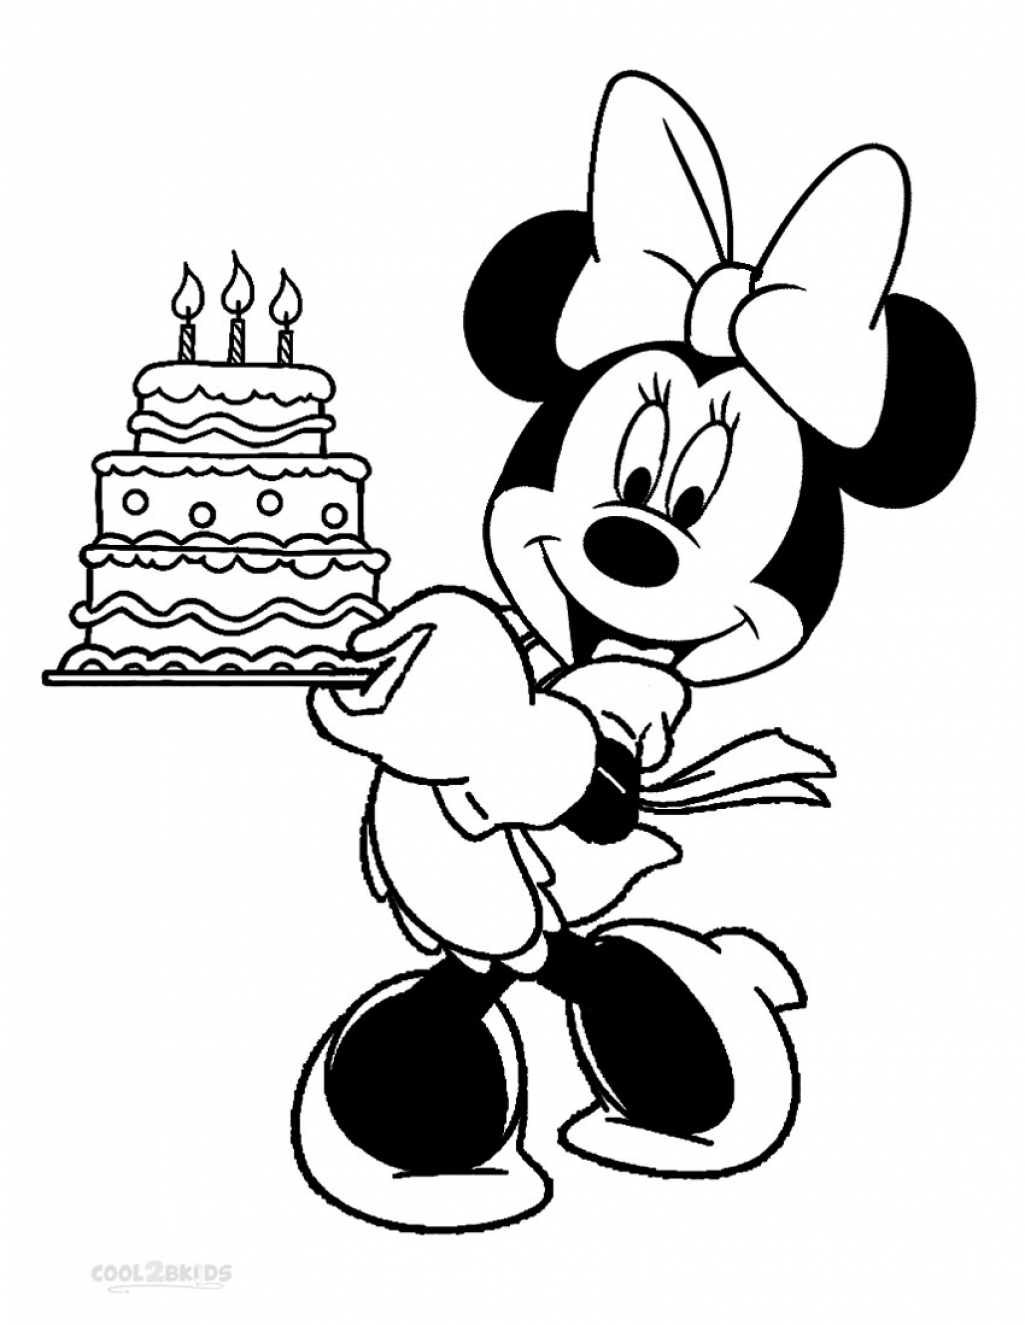 21 Free Mickey Mouse Coloring Pages Images Free Coloring Pages